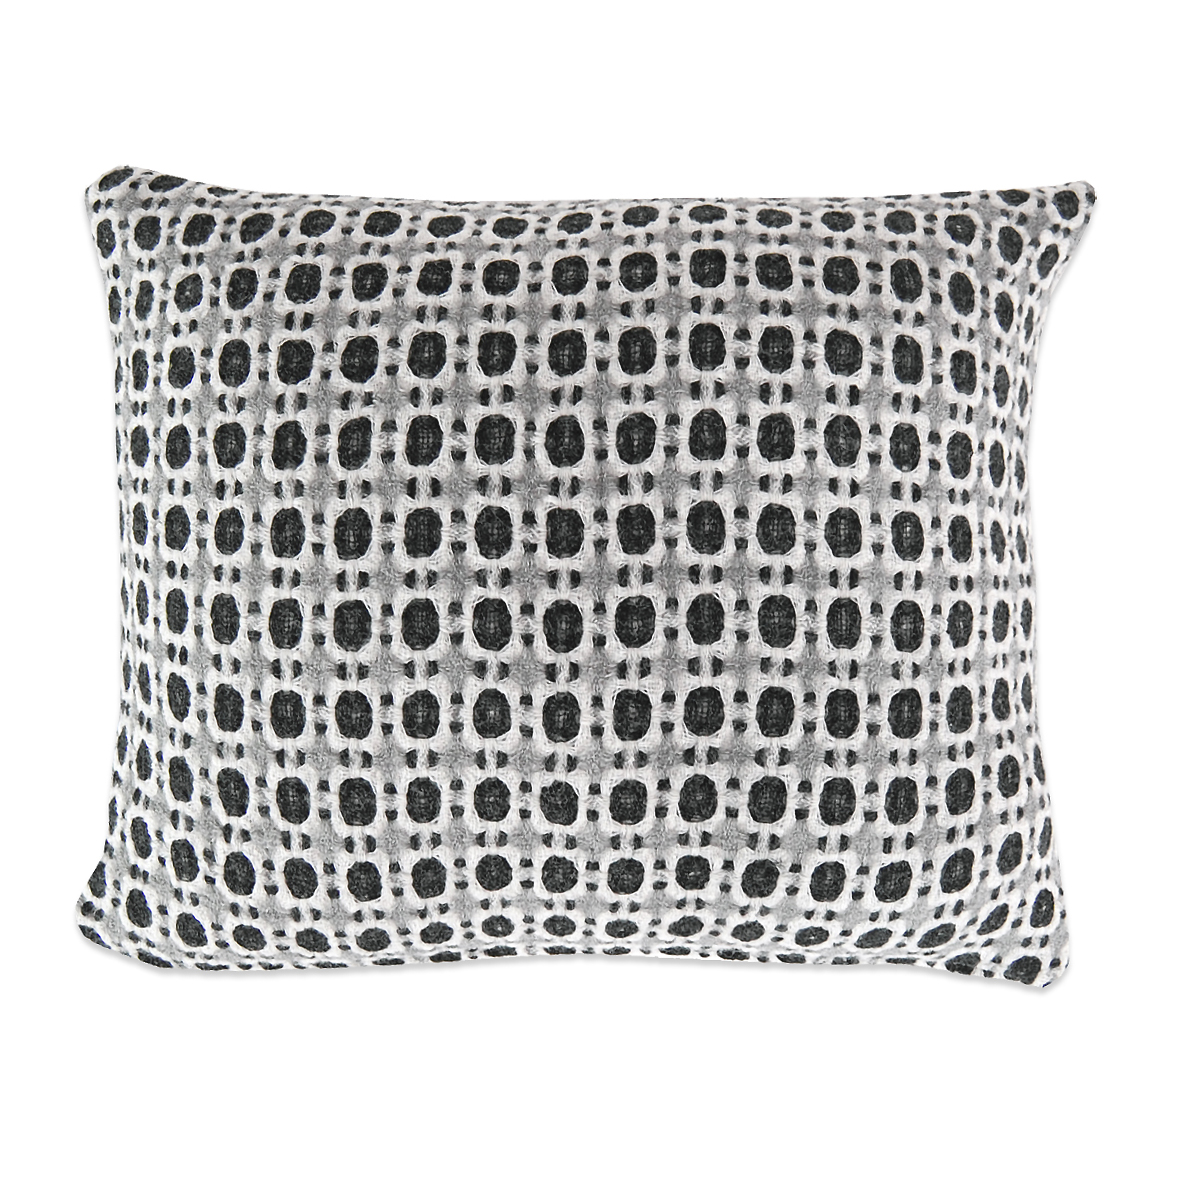 com the aquasealpro home graphics for of mermaid throw solana pillows black in sequin fresh pillow delightful